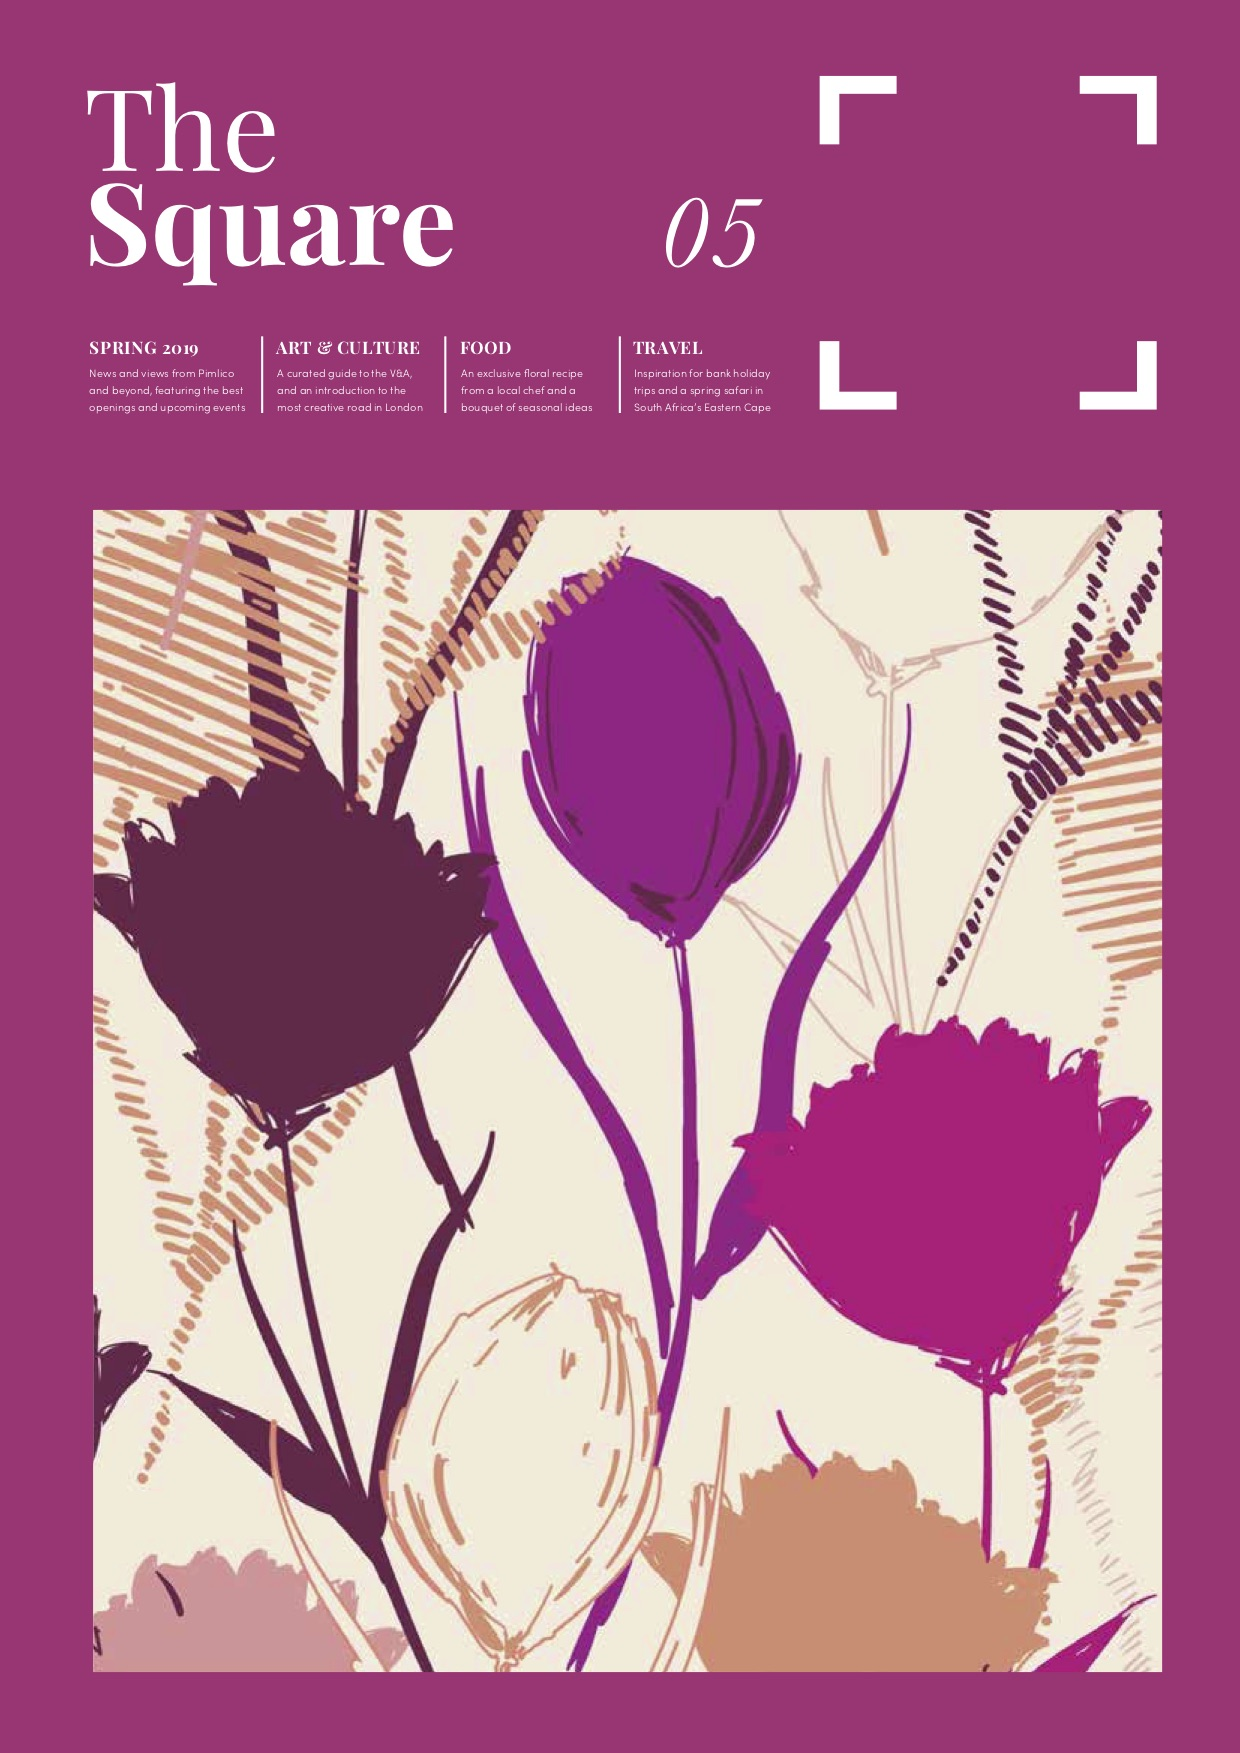 TheSquare-Issue5-low-res Final copy.jpg